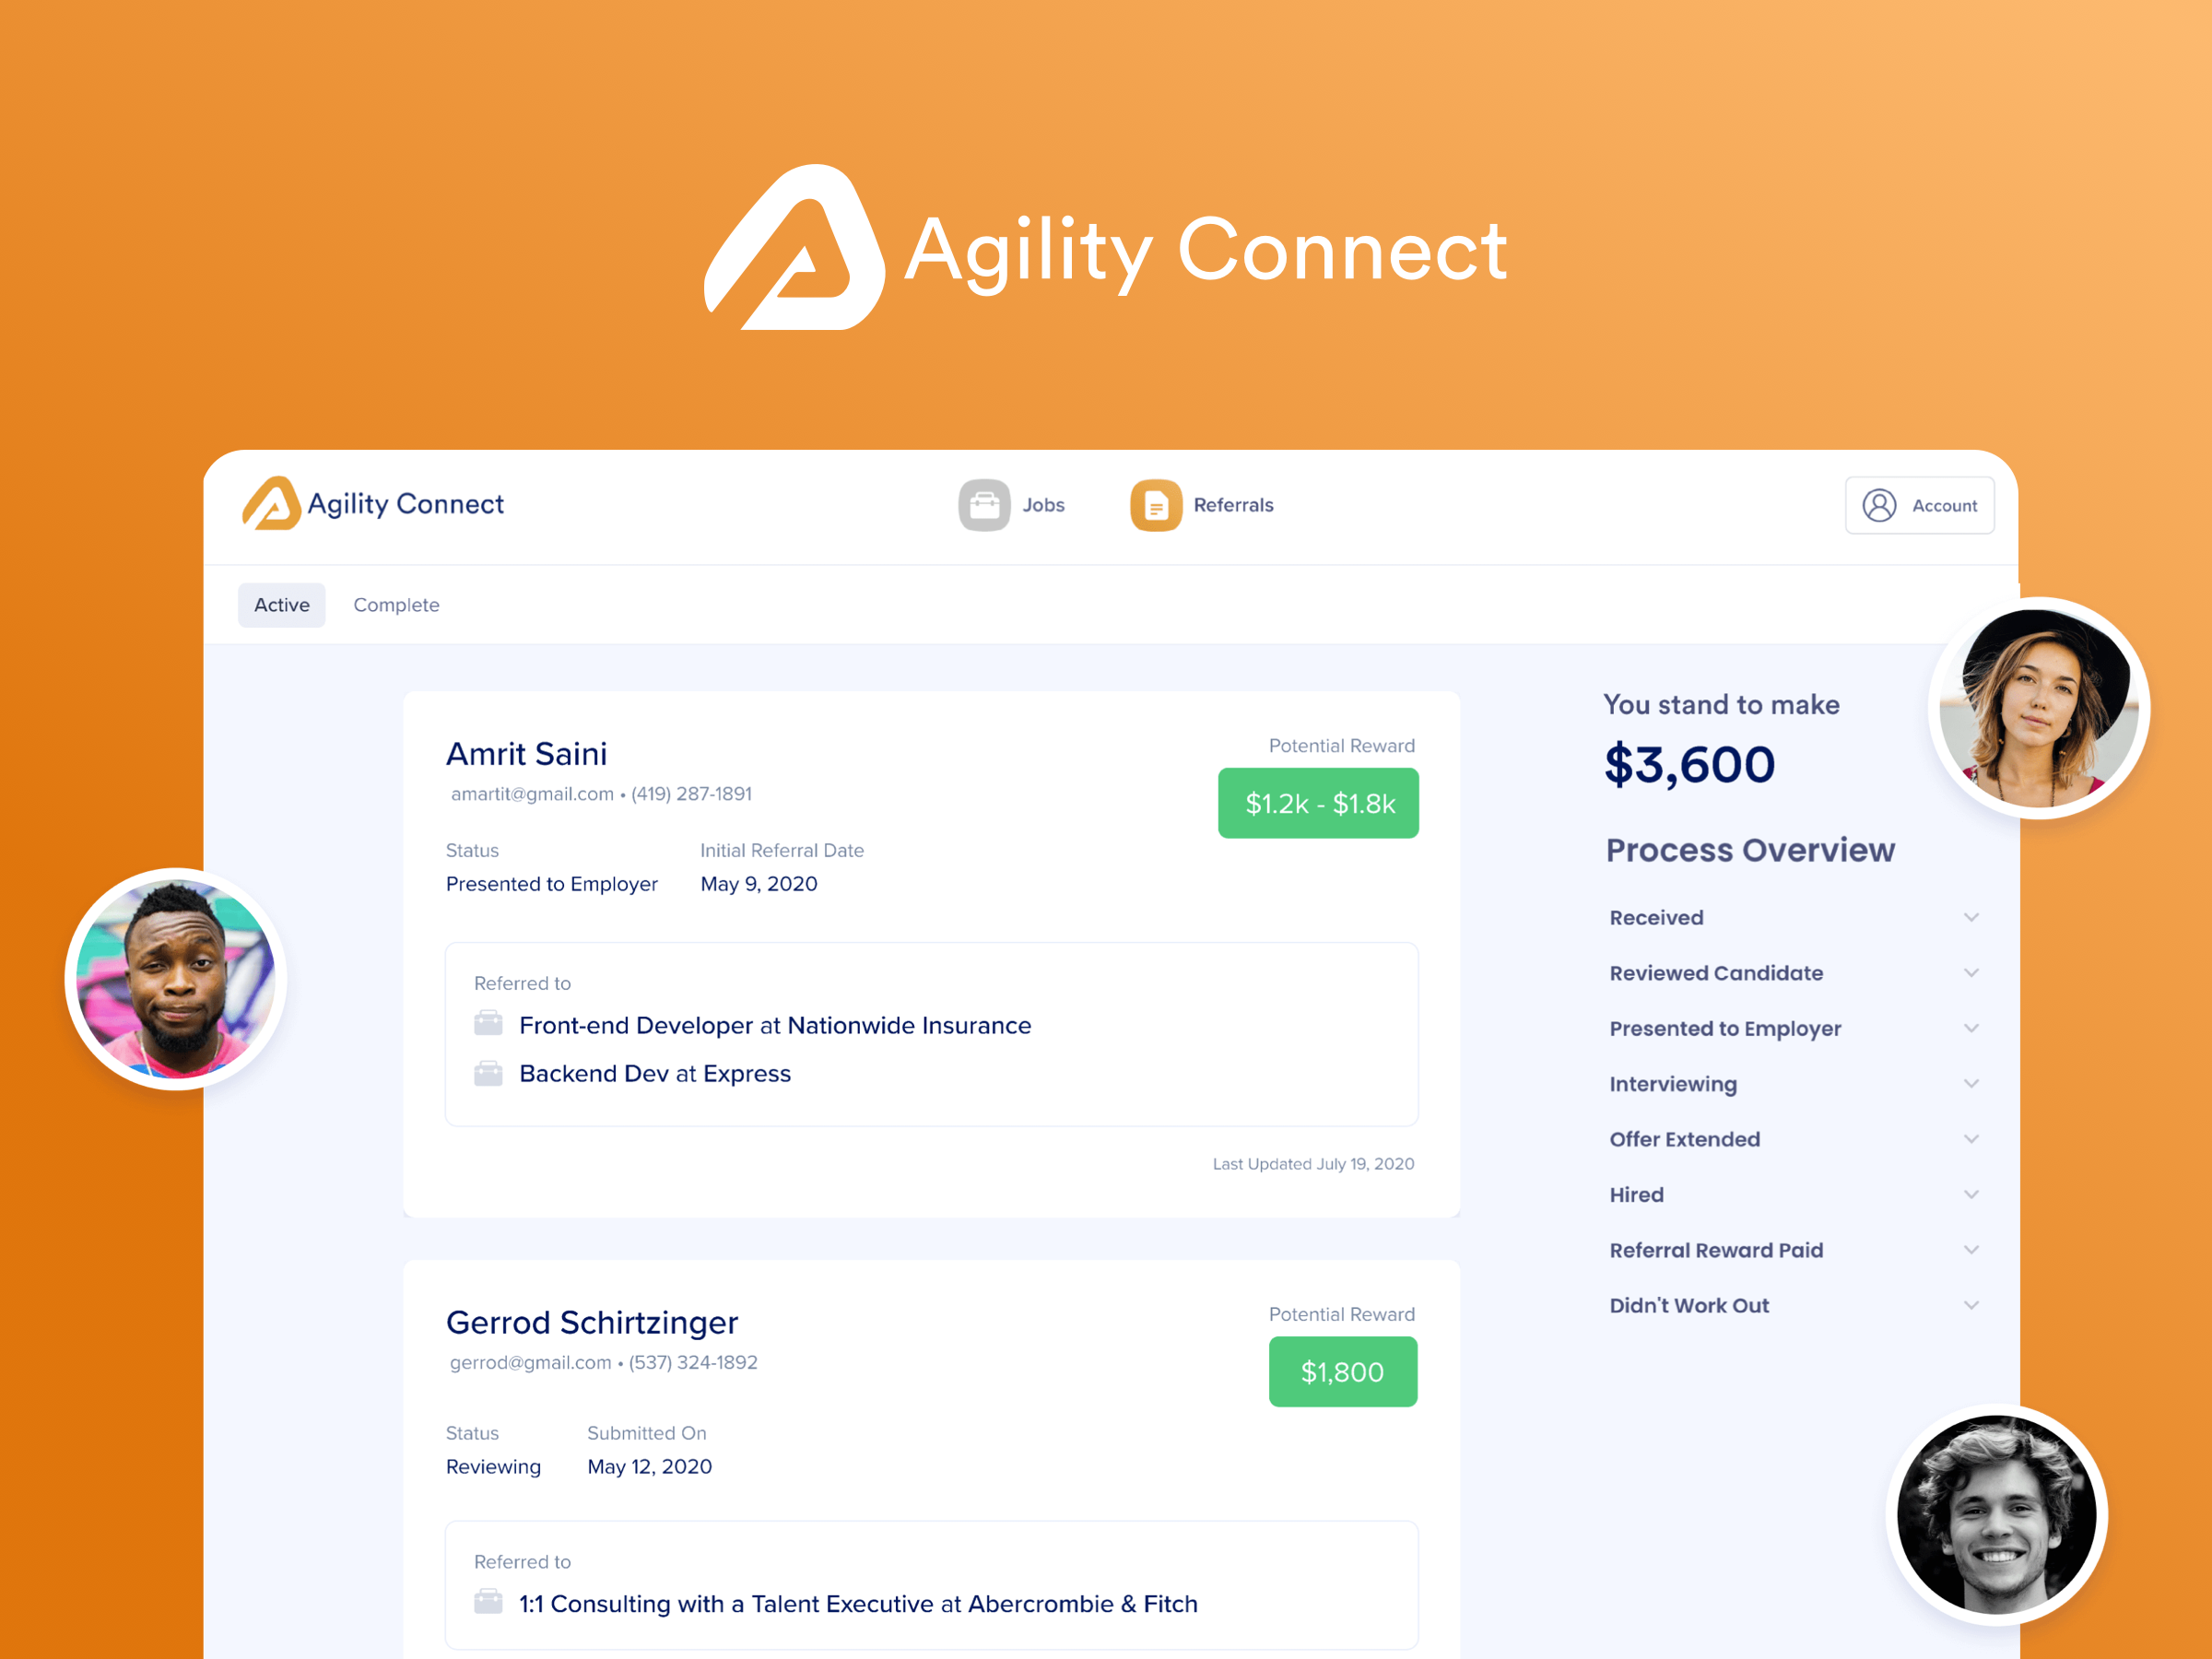 Agility Connect